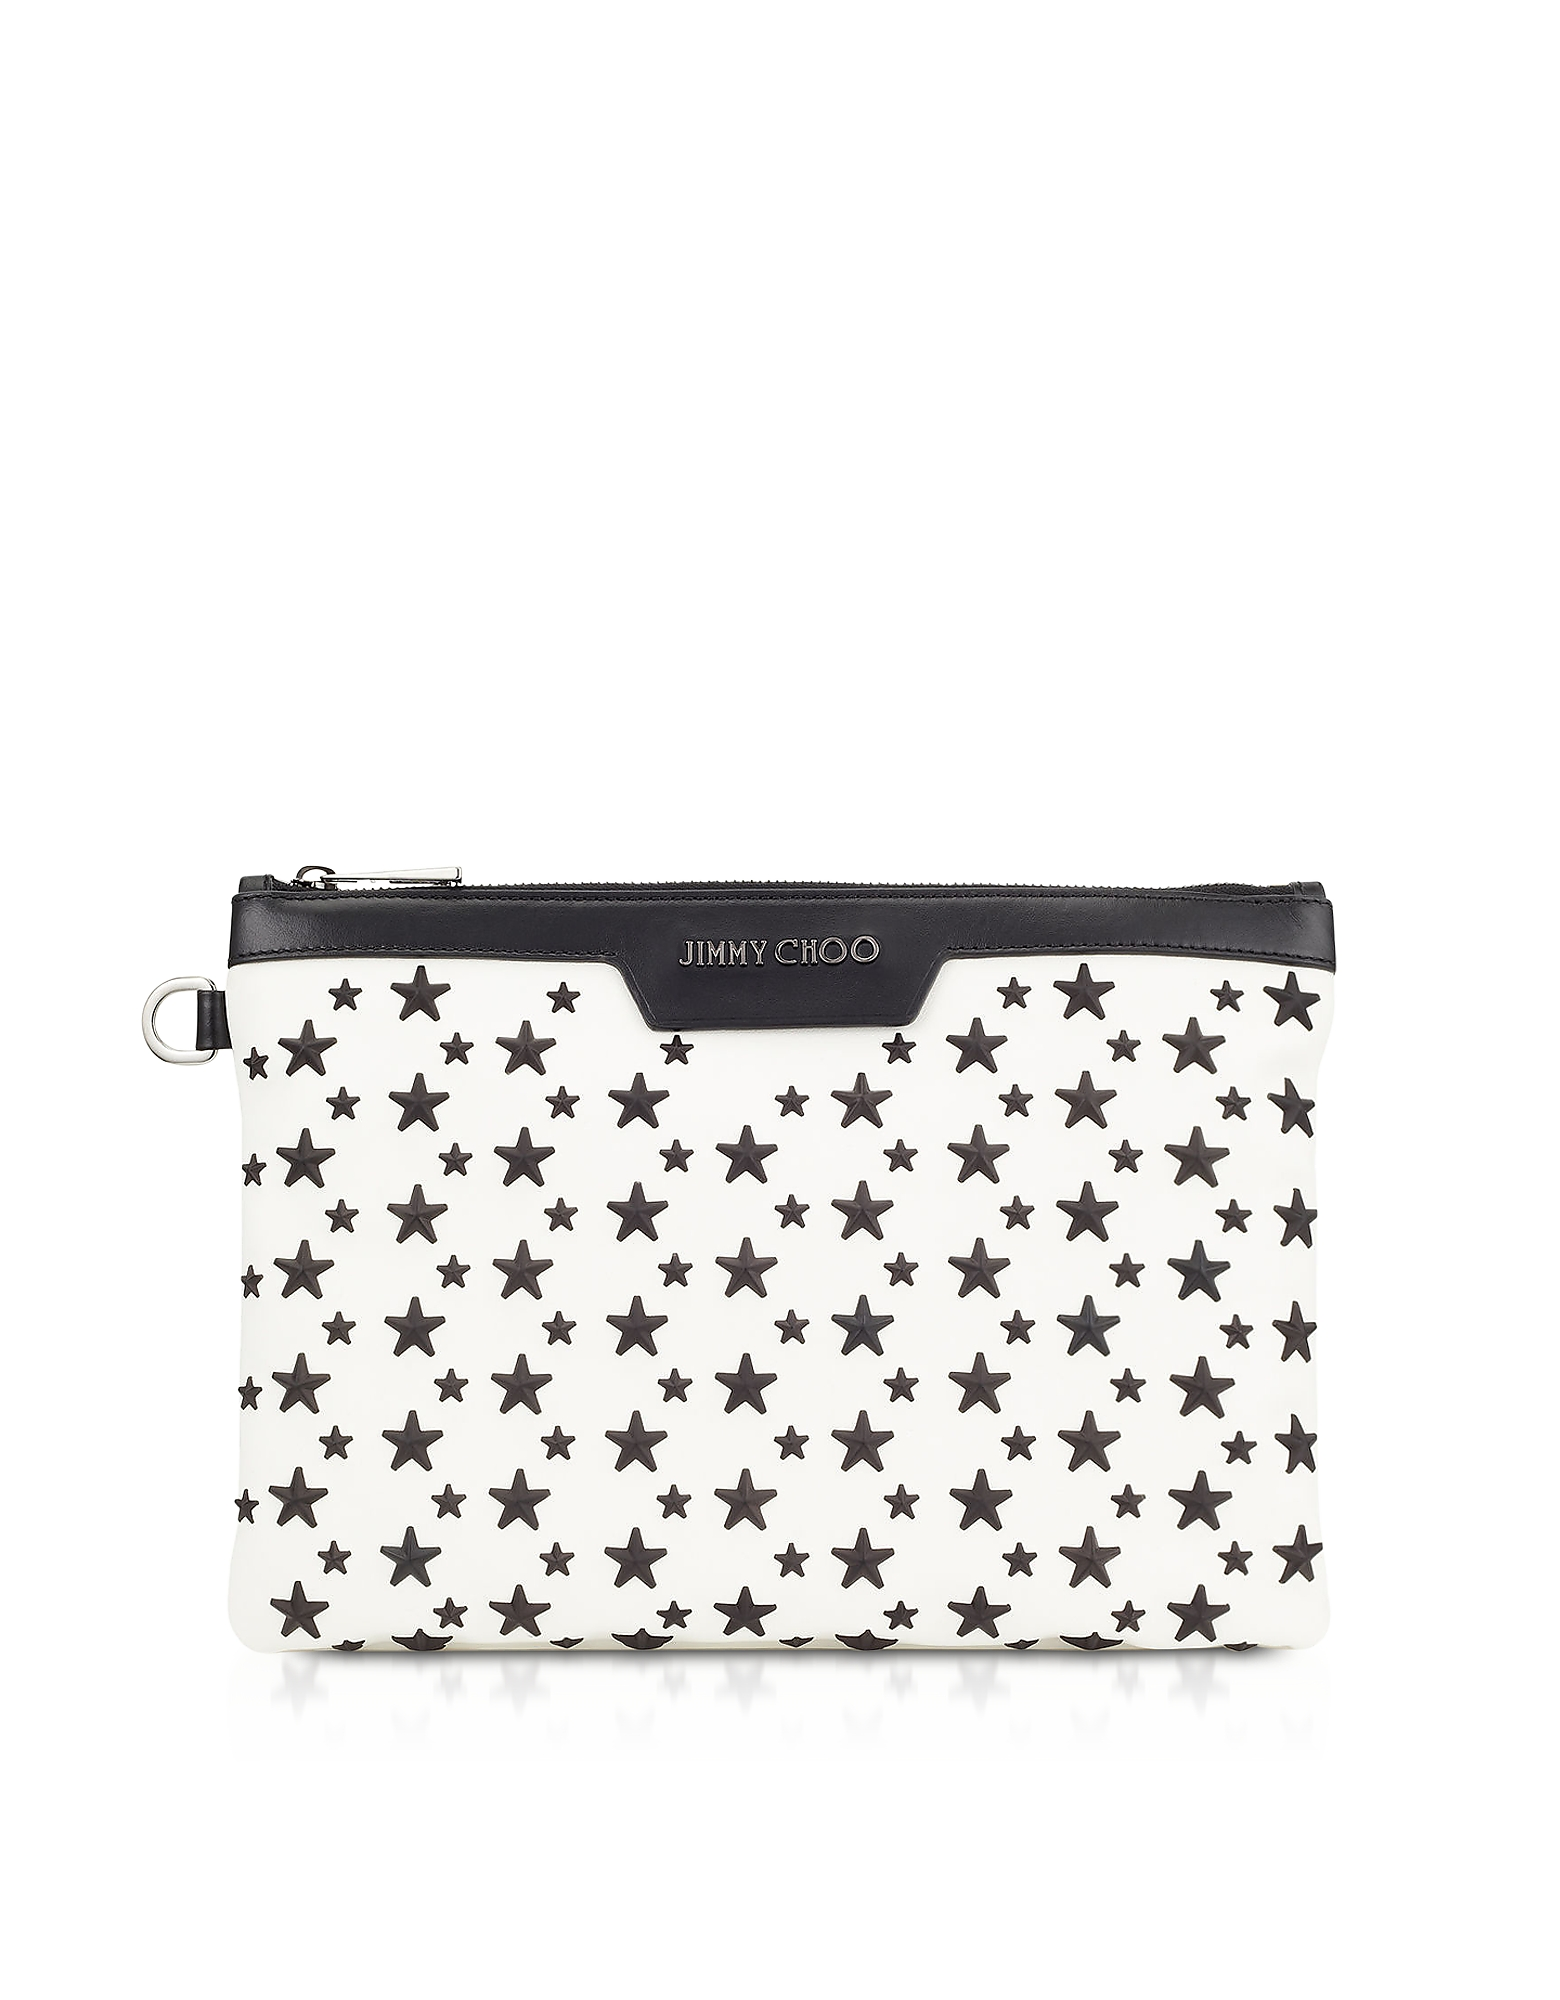 White & Black DEREK/S Small Clutch w/Stars